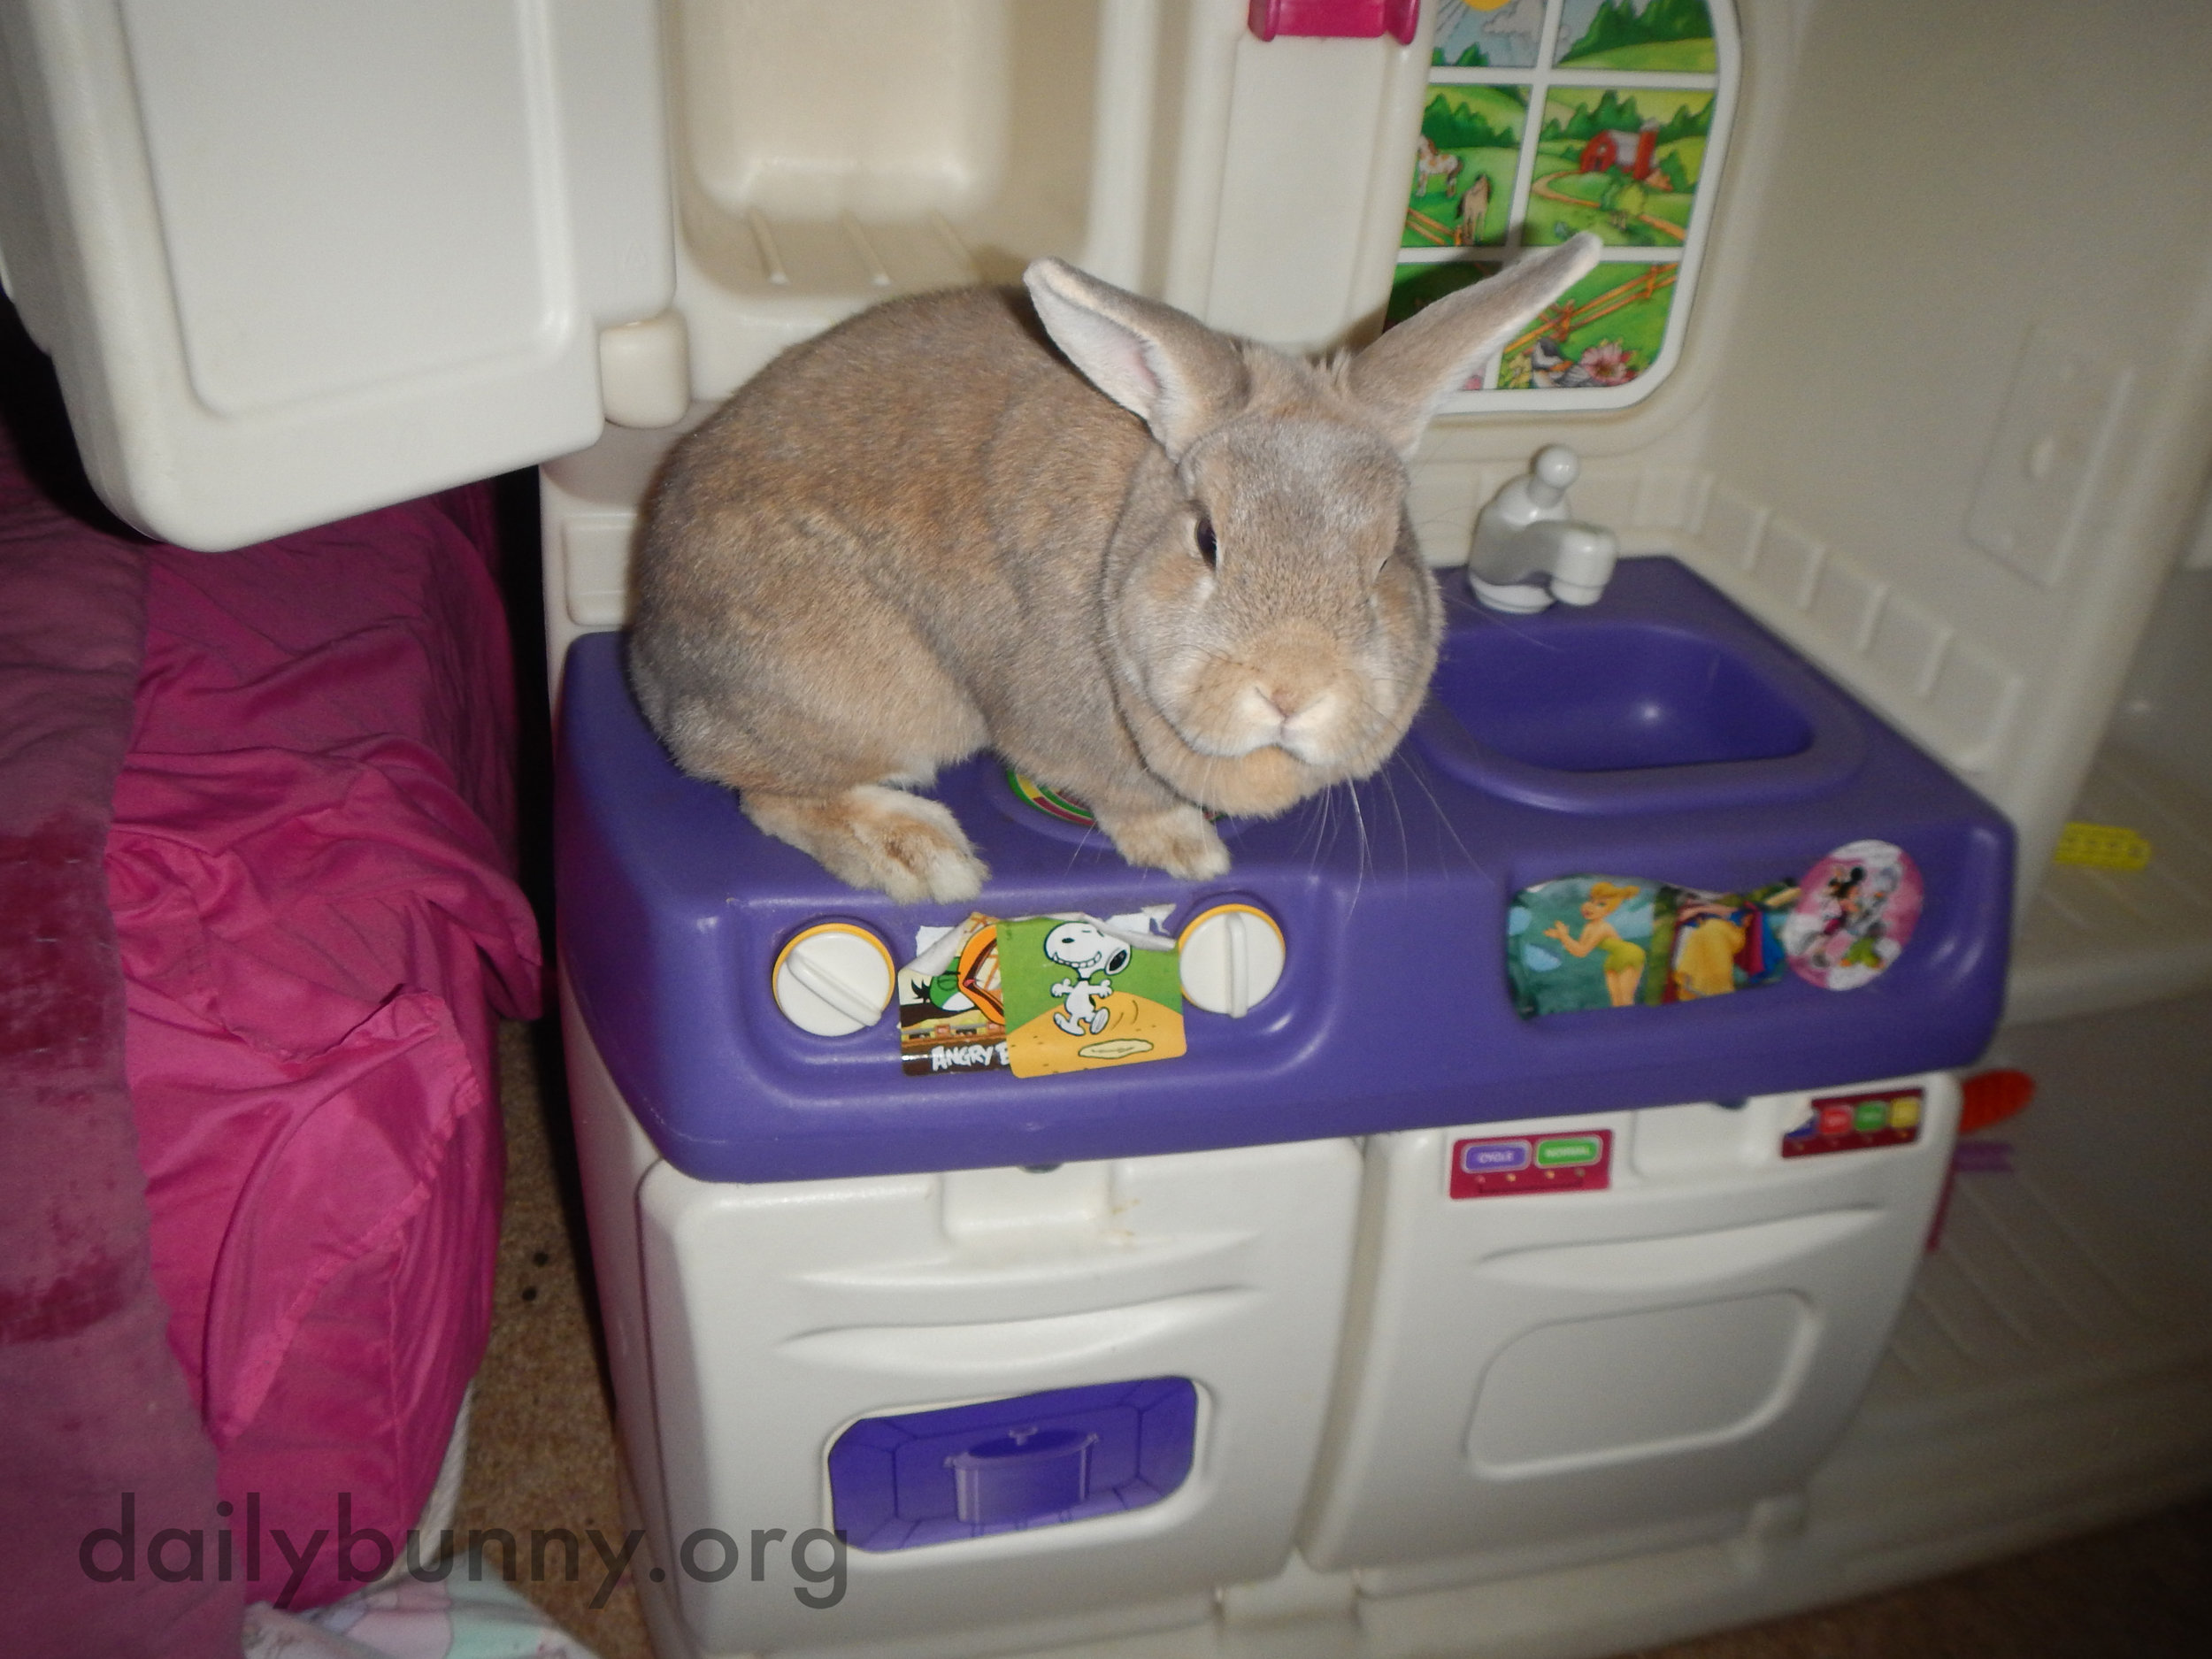 Bunnies Explore a Kitchen That's a Little More Bunny-Sized 3